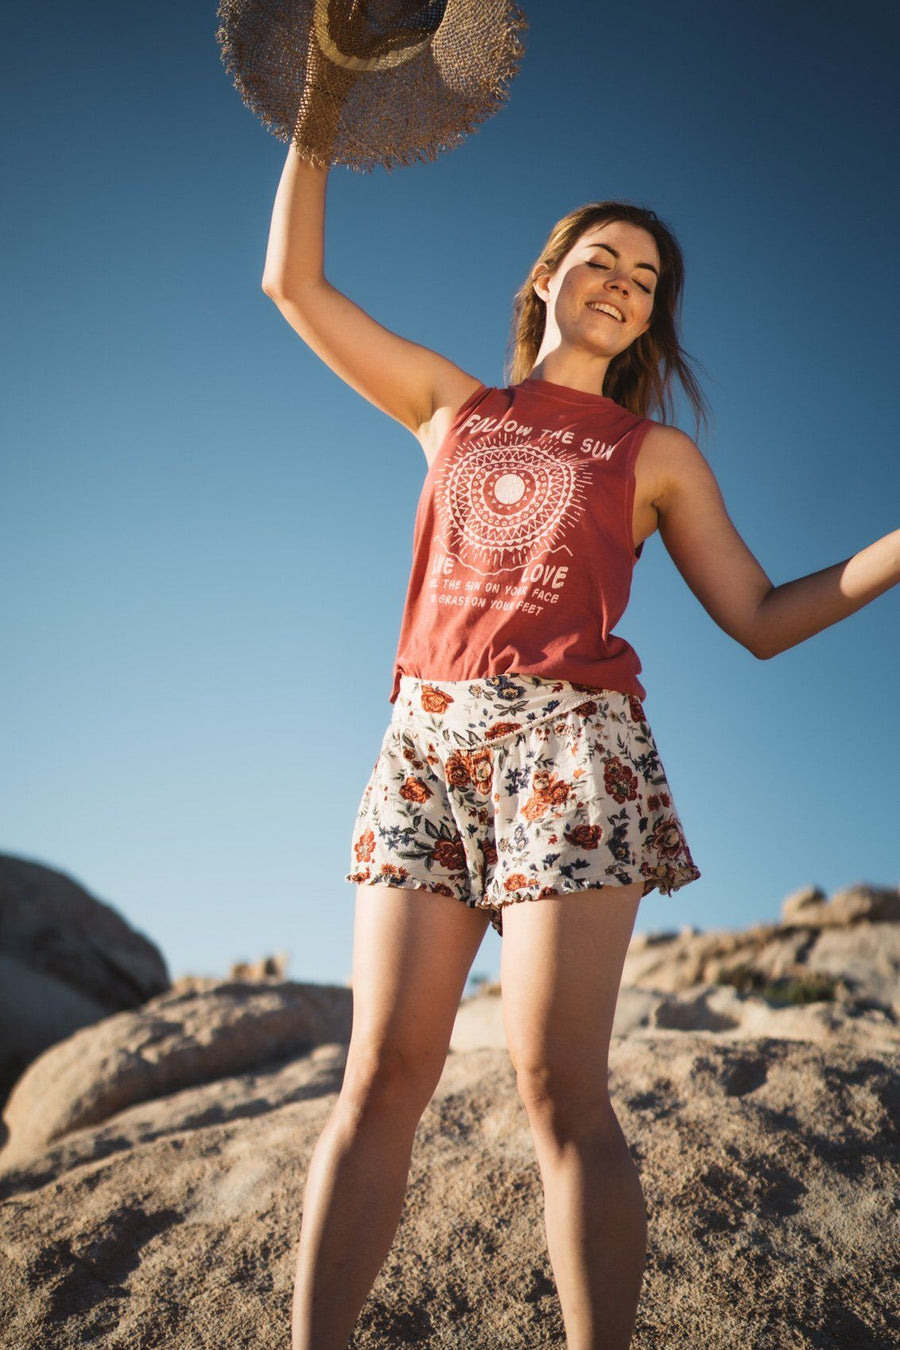 Follow The Sun Muscle Tank - Wondery, A Parks Apparel Brand